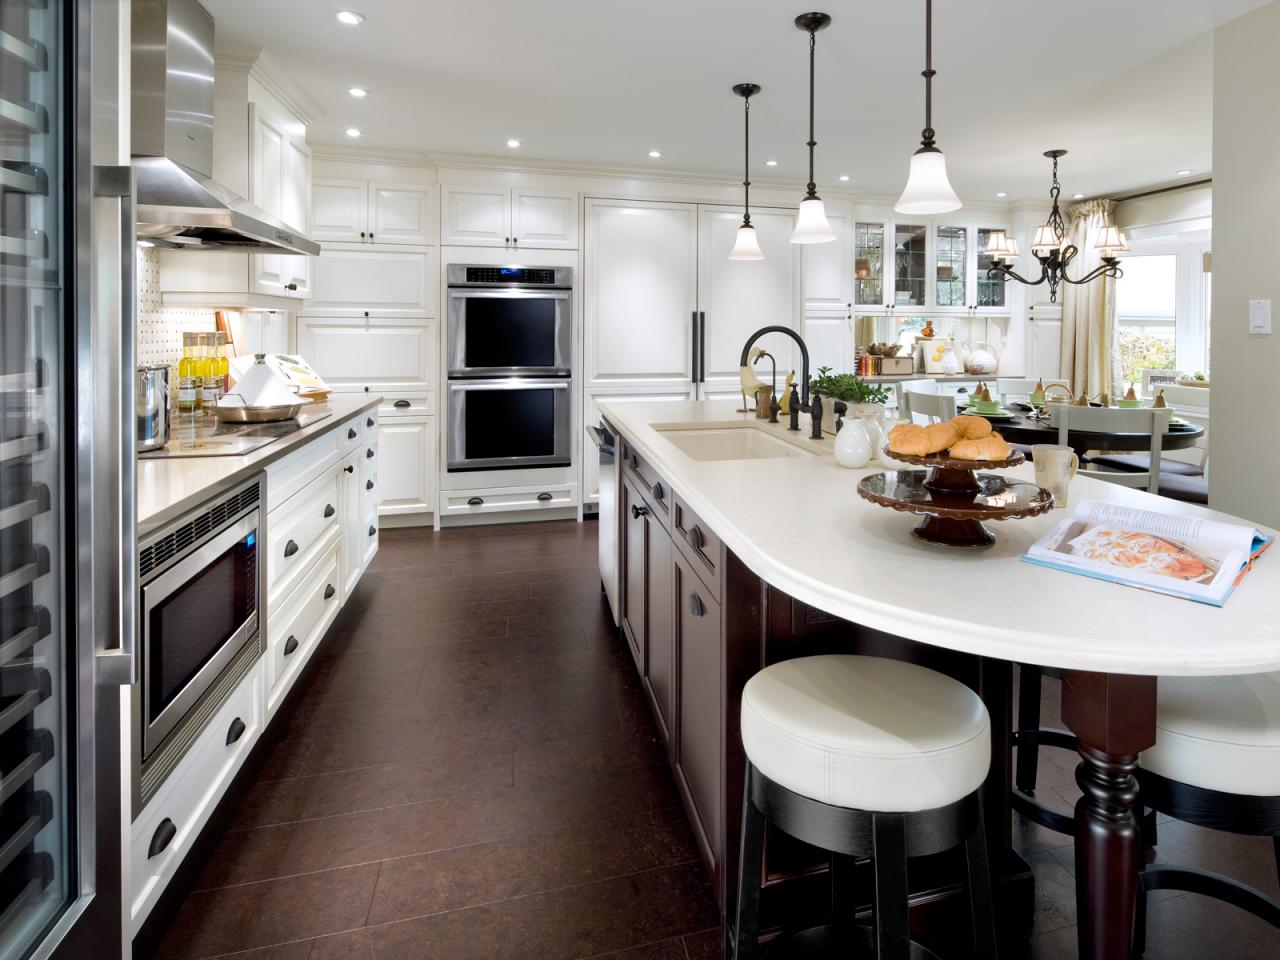 candice olson kitchens pictures photo - 6